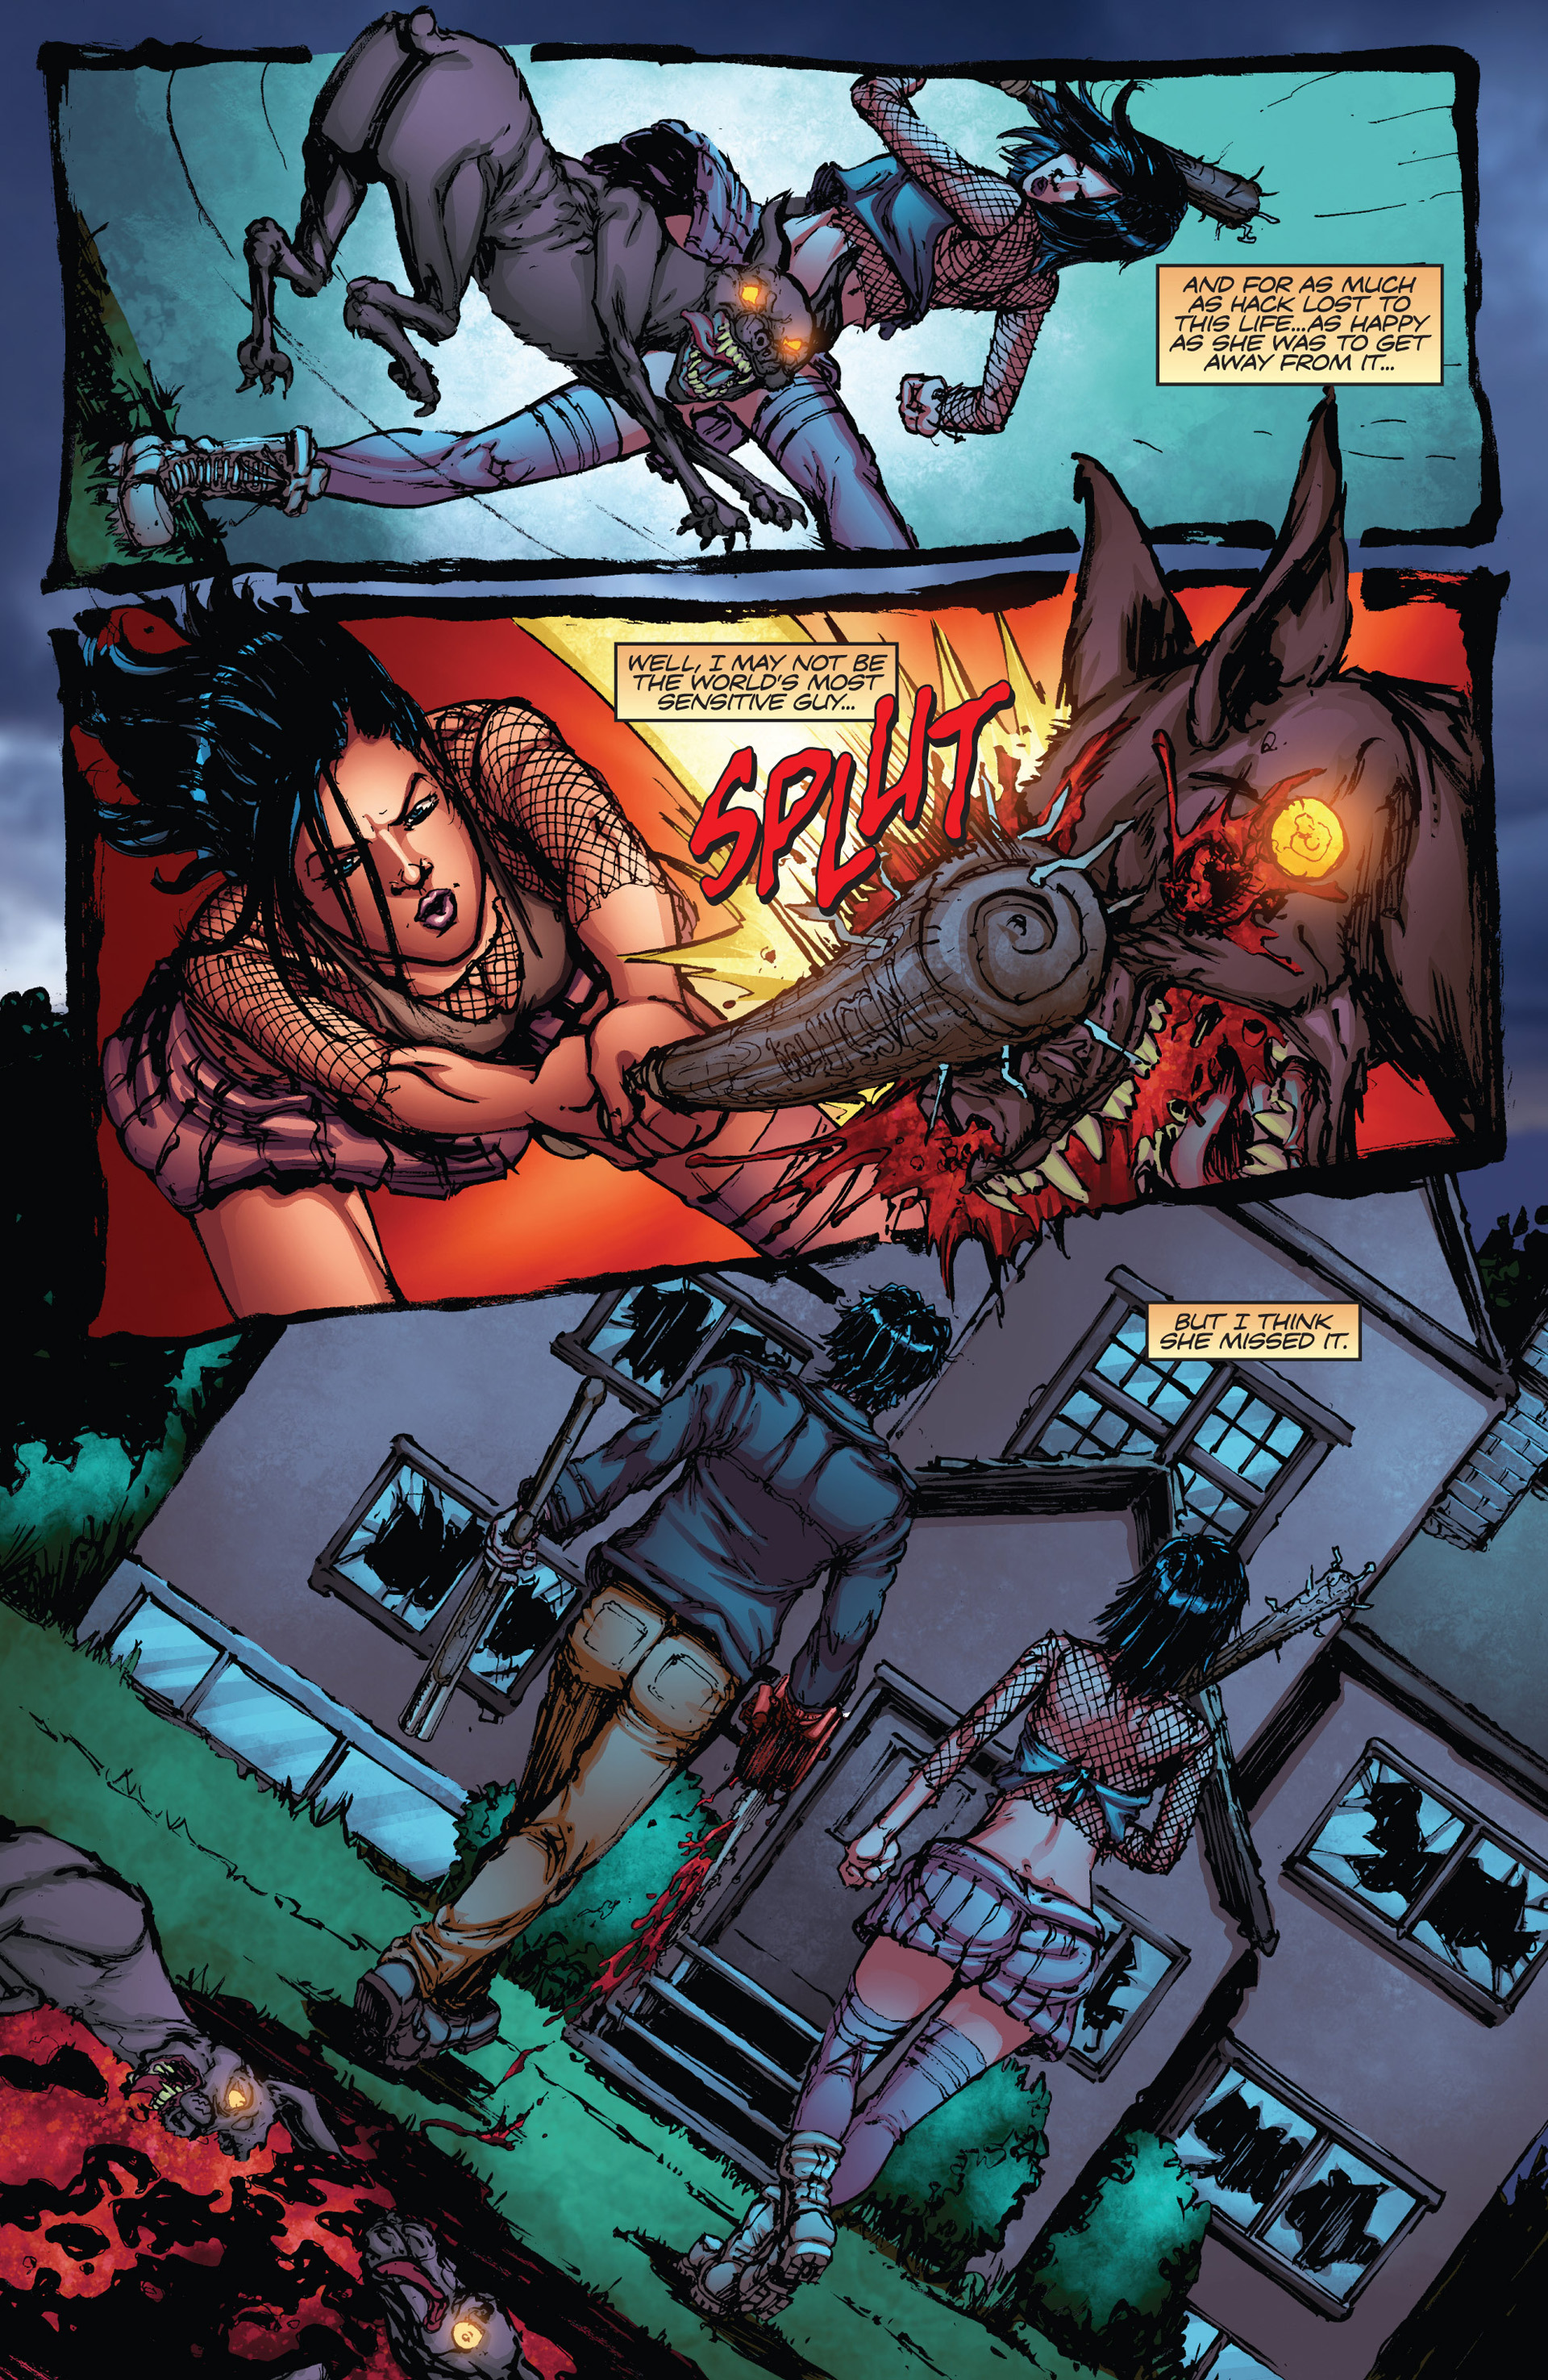 Read online Army of Darkness vs. Hack/Slash comic -  Issue #2 - 22